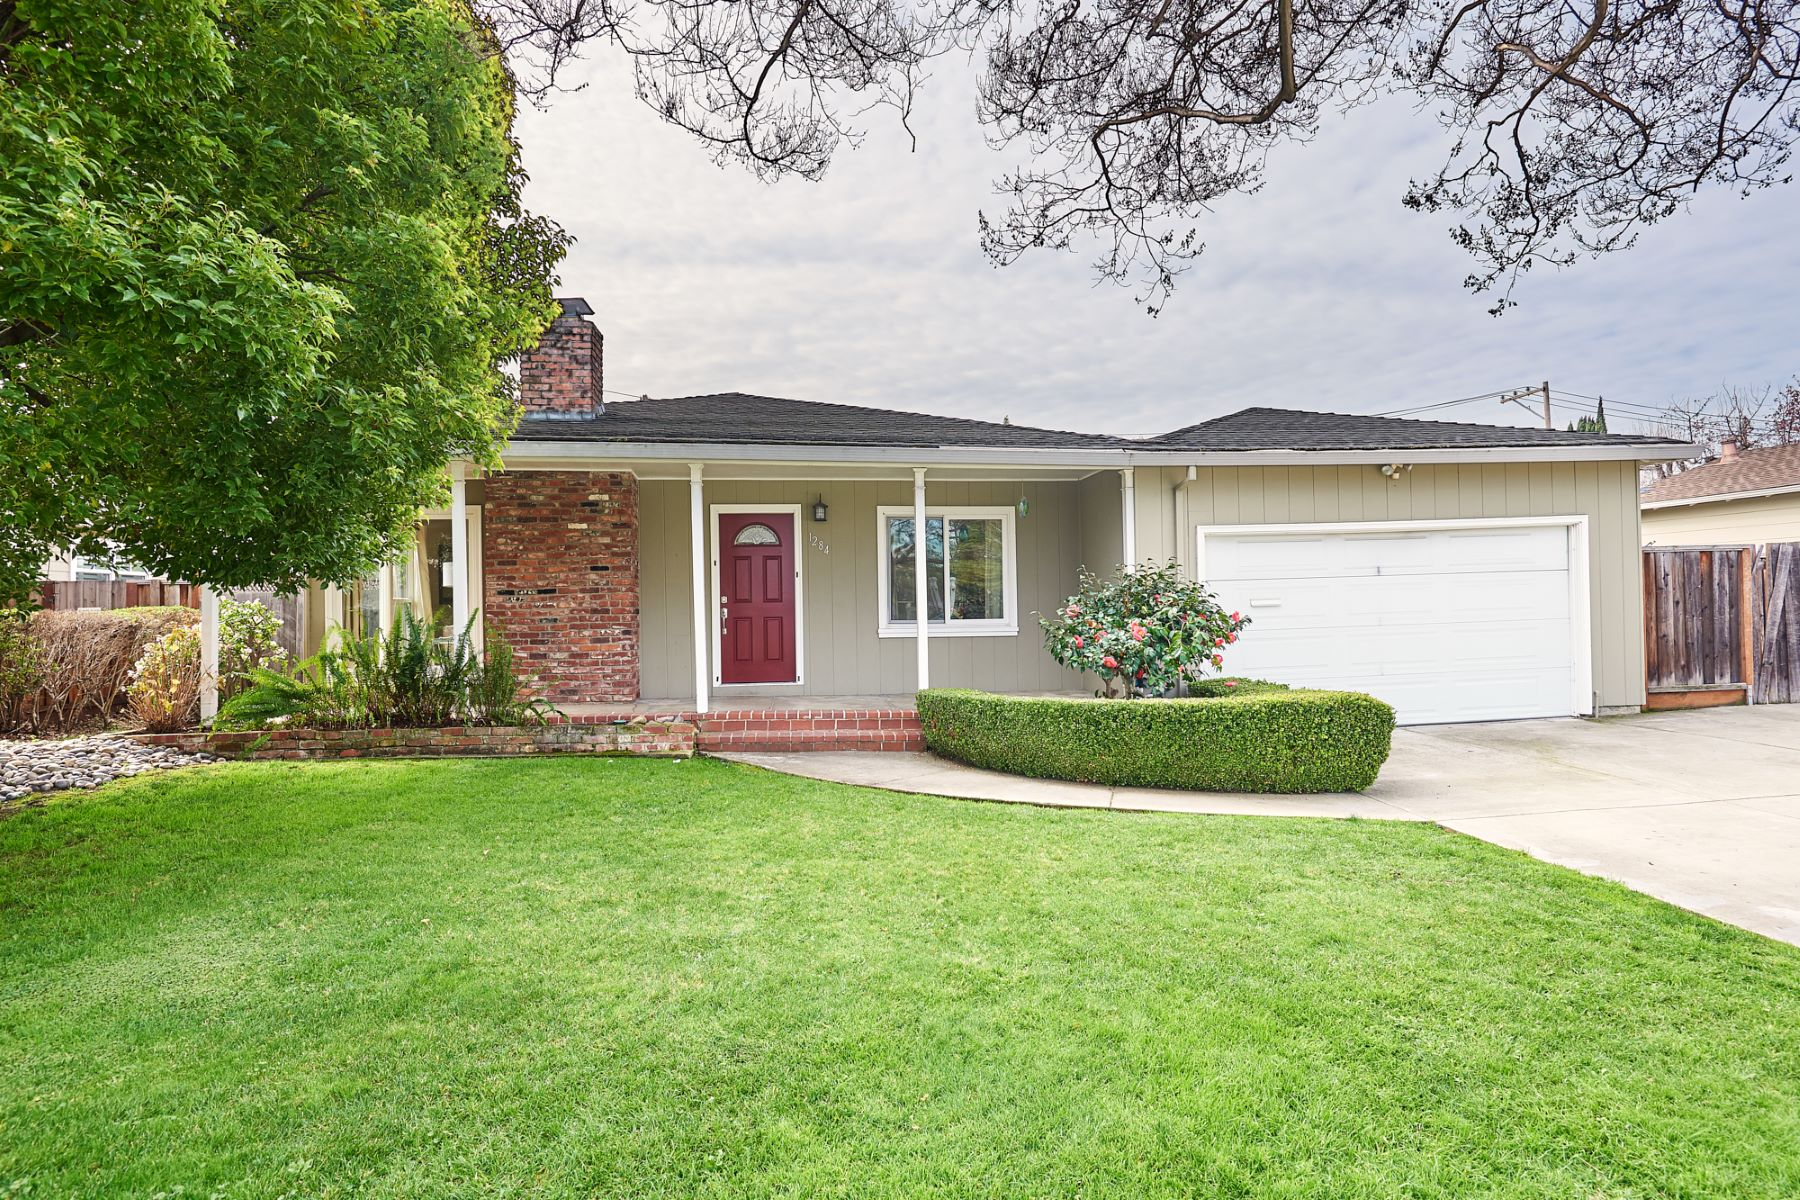 Single Family Home for Active at Beautiful Ranch Style Home 1284 Truman Street Redwood City, California 94061 United States